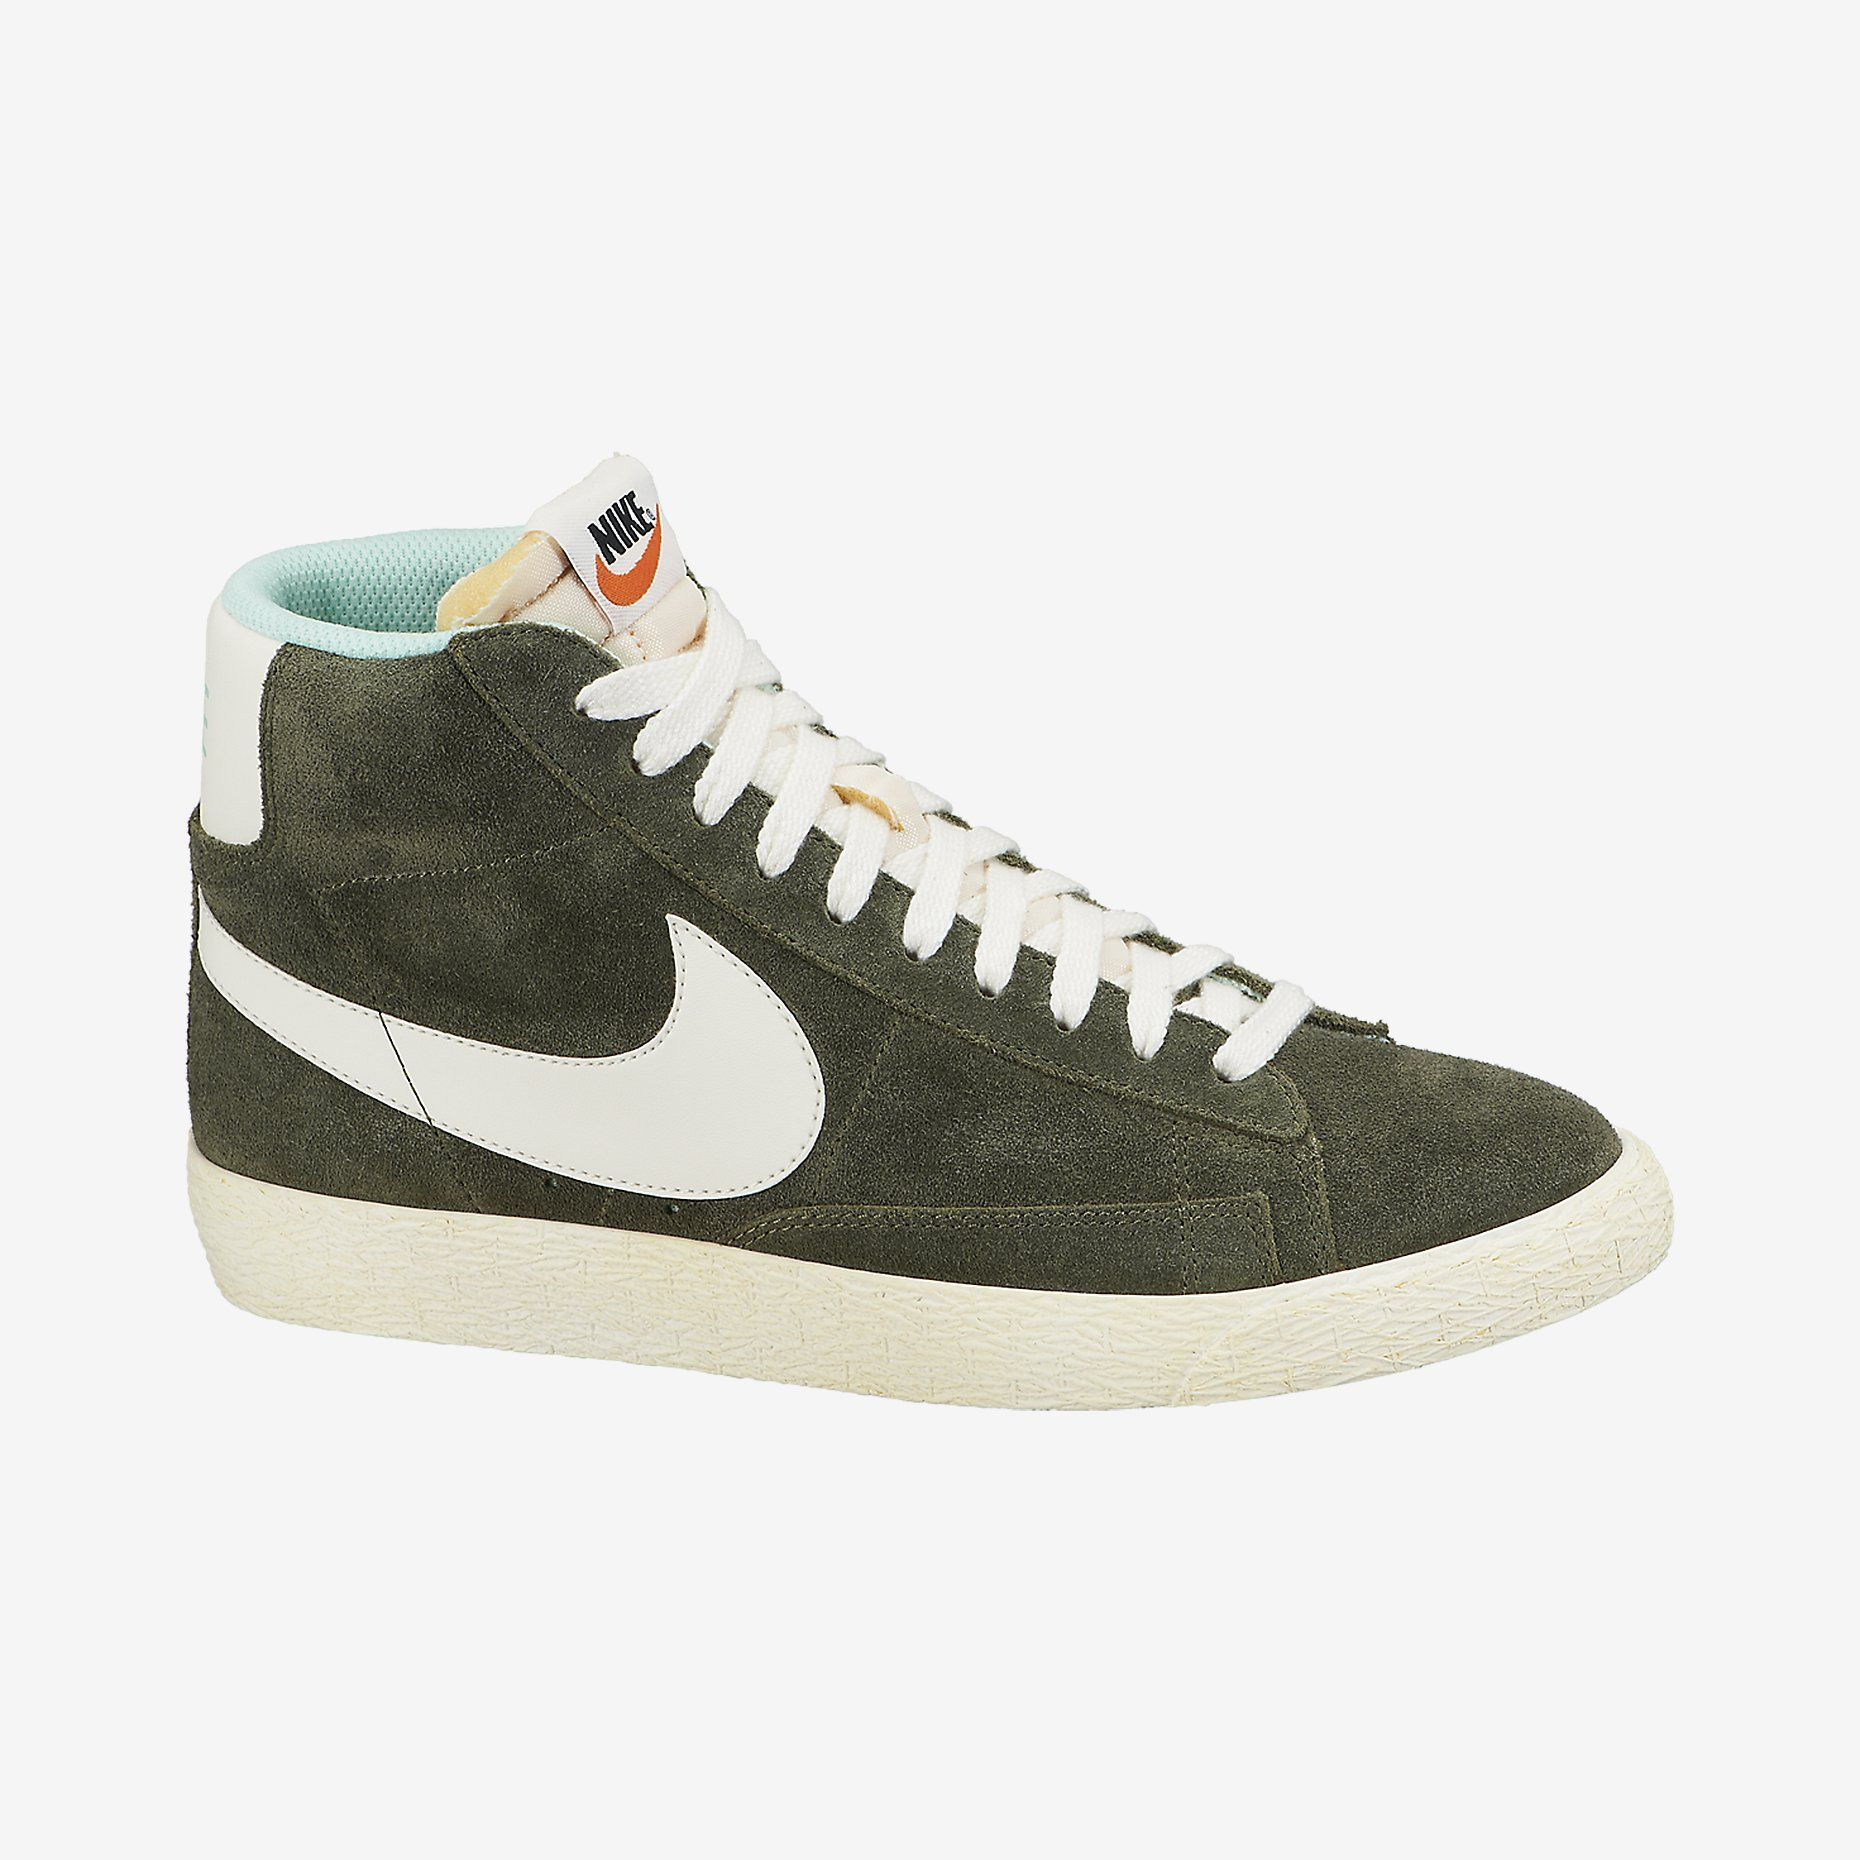 official photos 2f7ed f7572 Nike Blazer Mid Suede Vintage Women's Shoe. Nike Store ✓ | Shoes